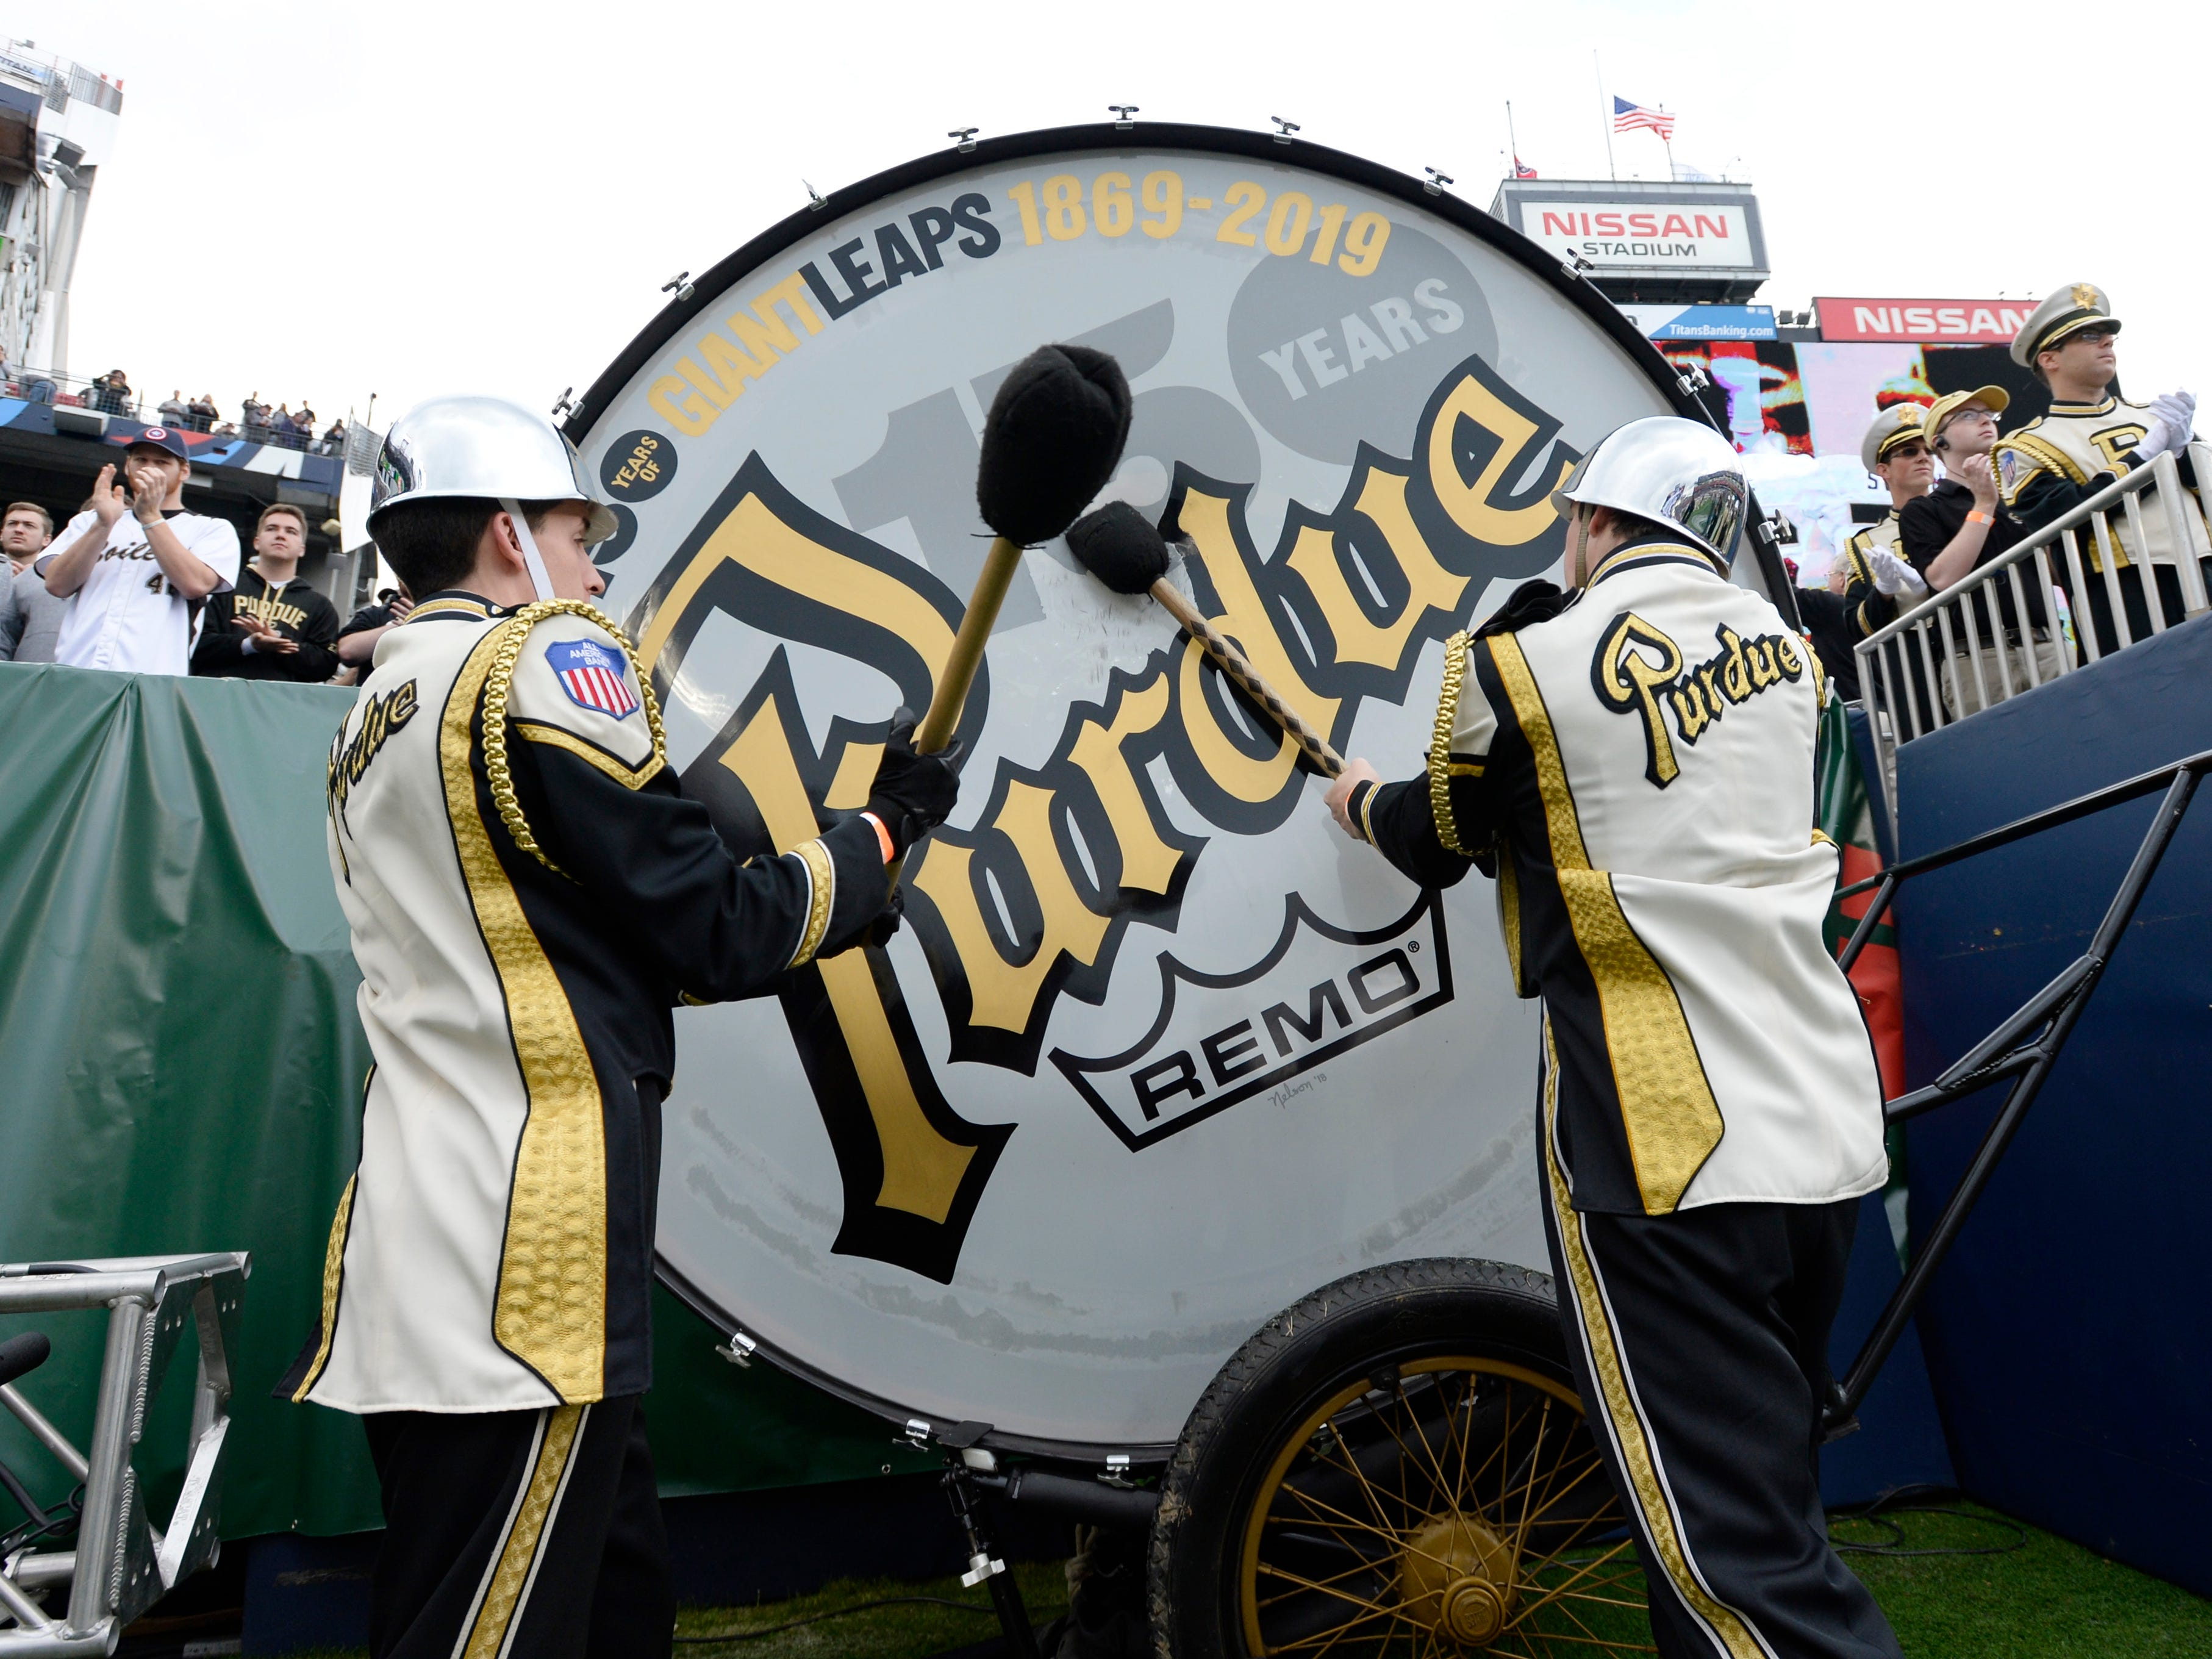 Purdue band members pound the drum before the start of of the Music City Bowl NCAA college football game Friday, Dec. 28, 2018, at Nissan Stadium in Nashville, Tenn.